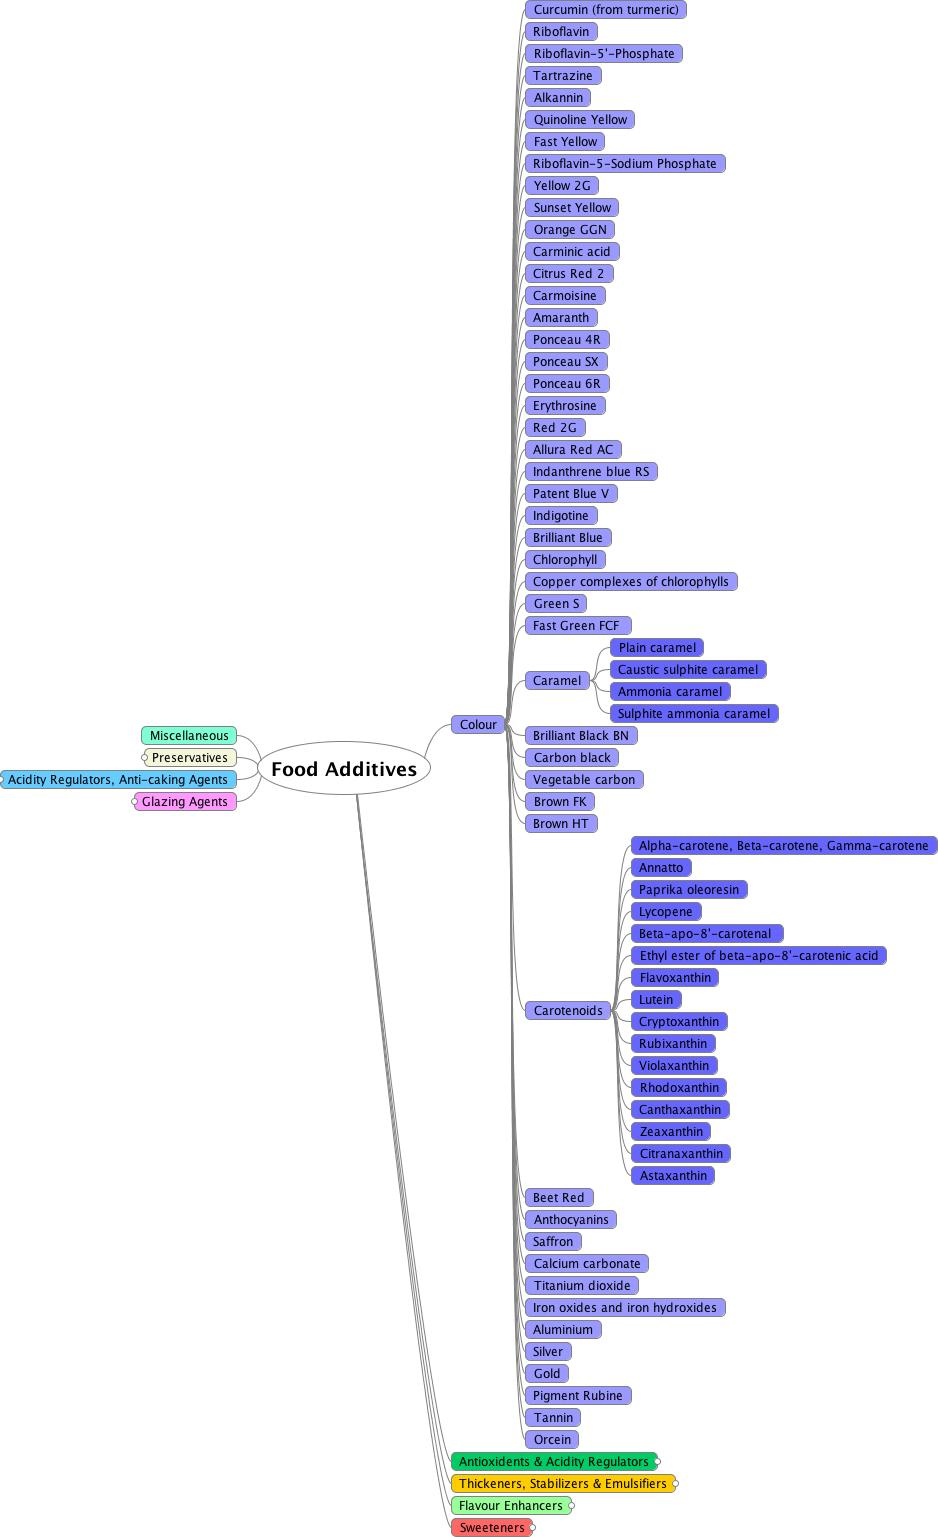 Mindmap diagram showing food colouring additives